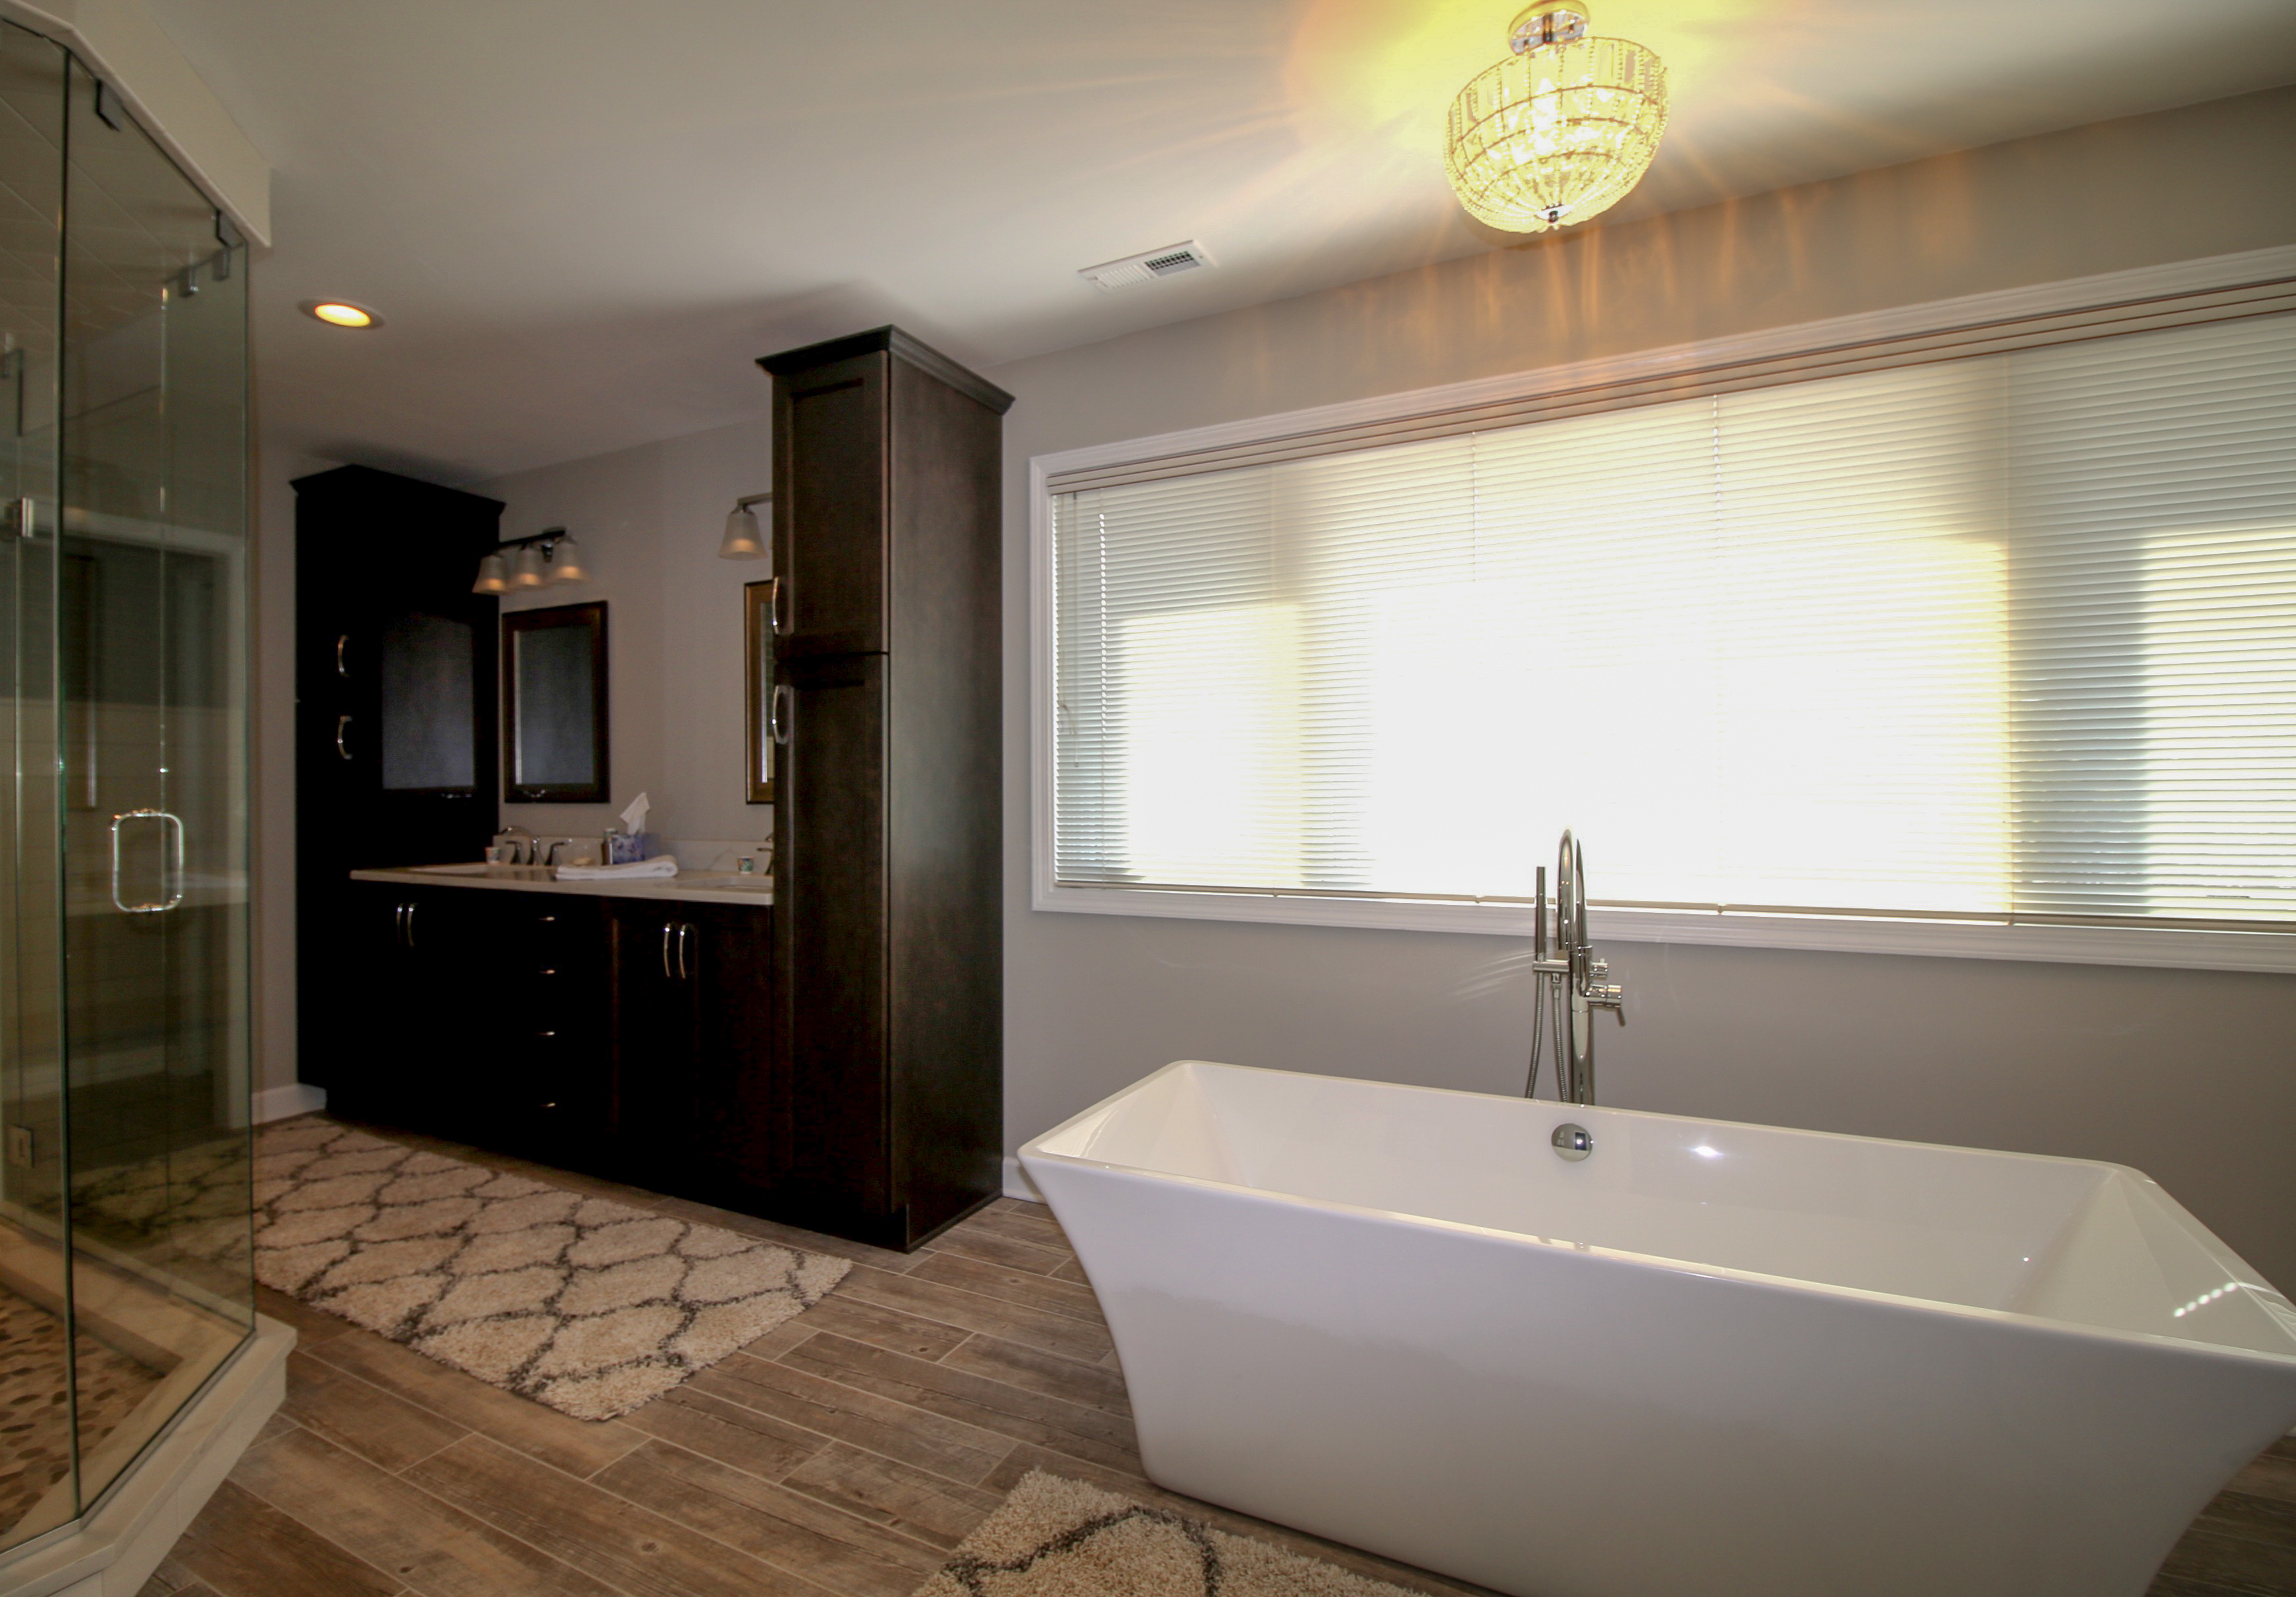 Bathroom Remodel with Standalone Soaking Tub